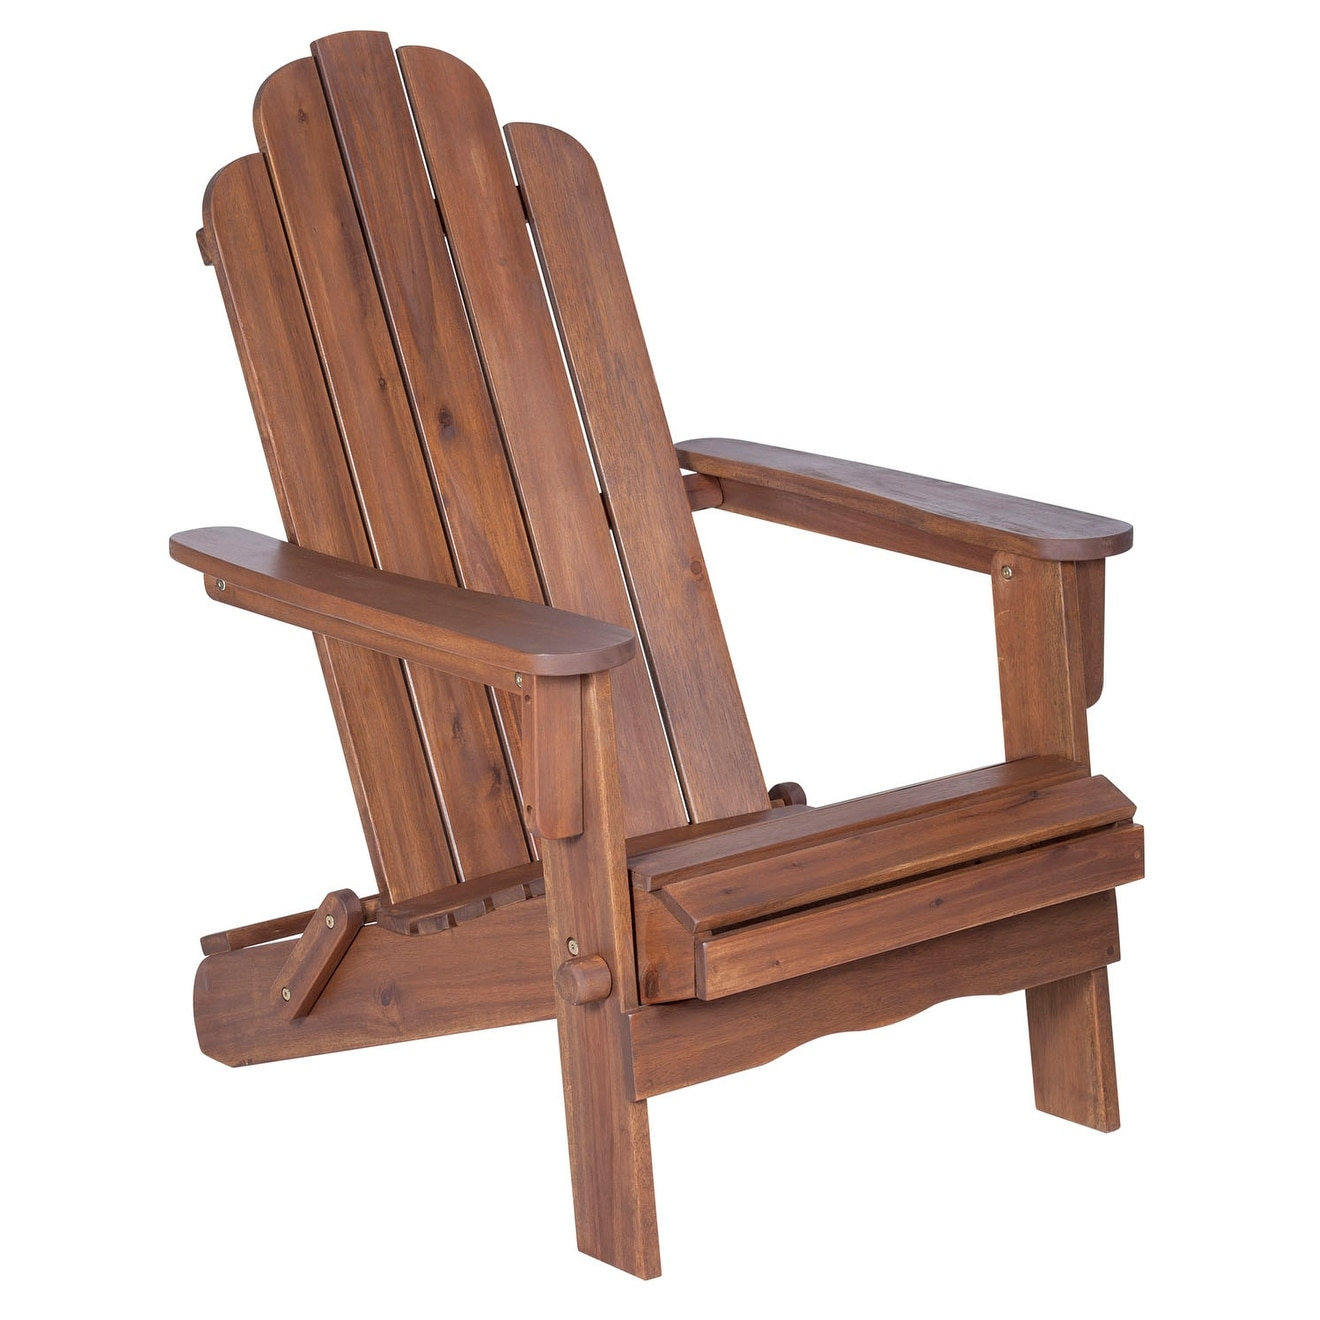 be6201fed741 Shop WE Furniture Solid Acacia Wood Adirondack Chair - Dark Brown - Free  Shipping Today - Overstock.com - 23060510